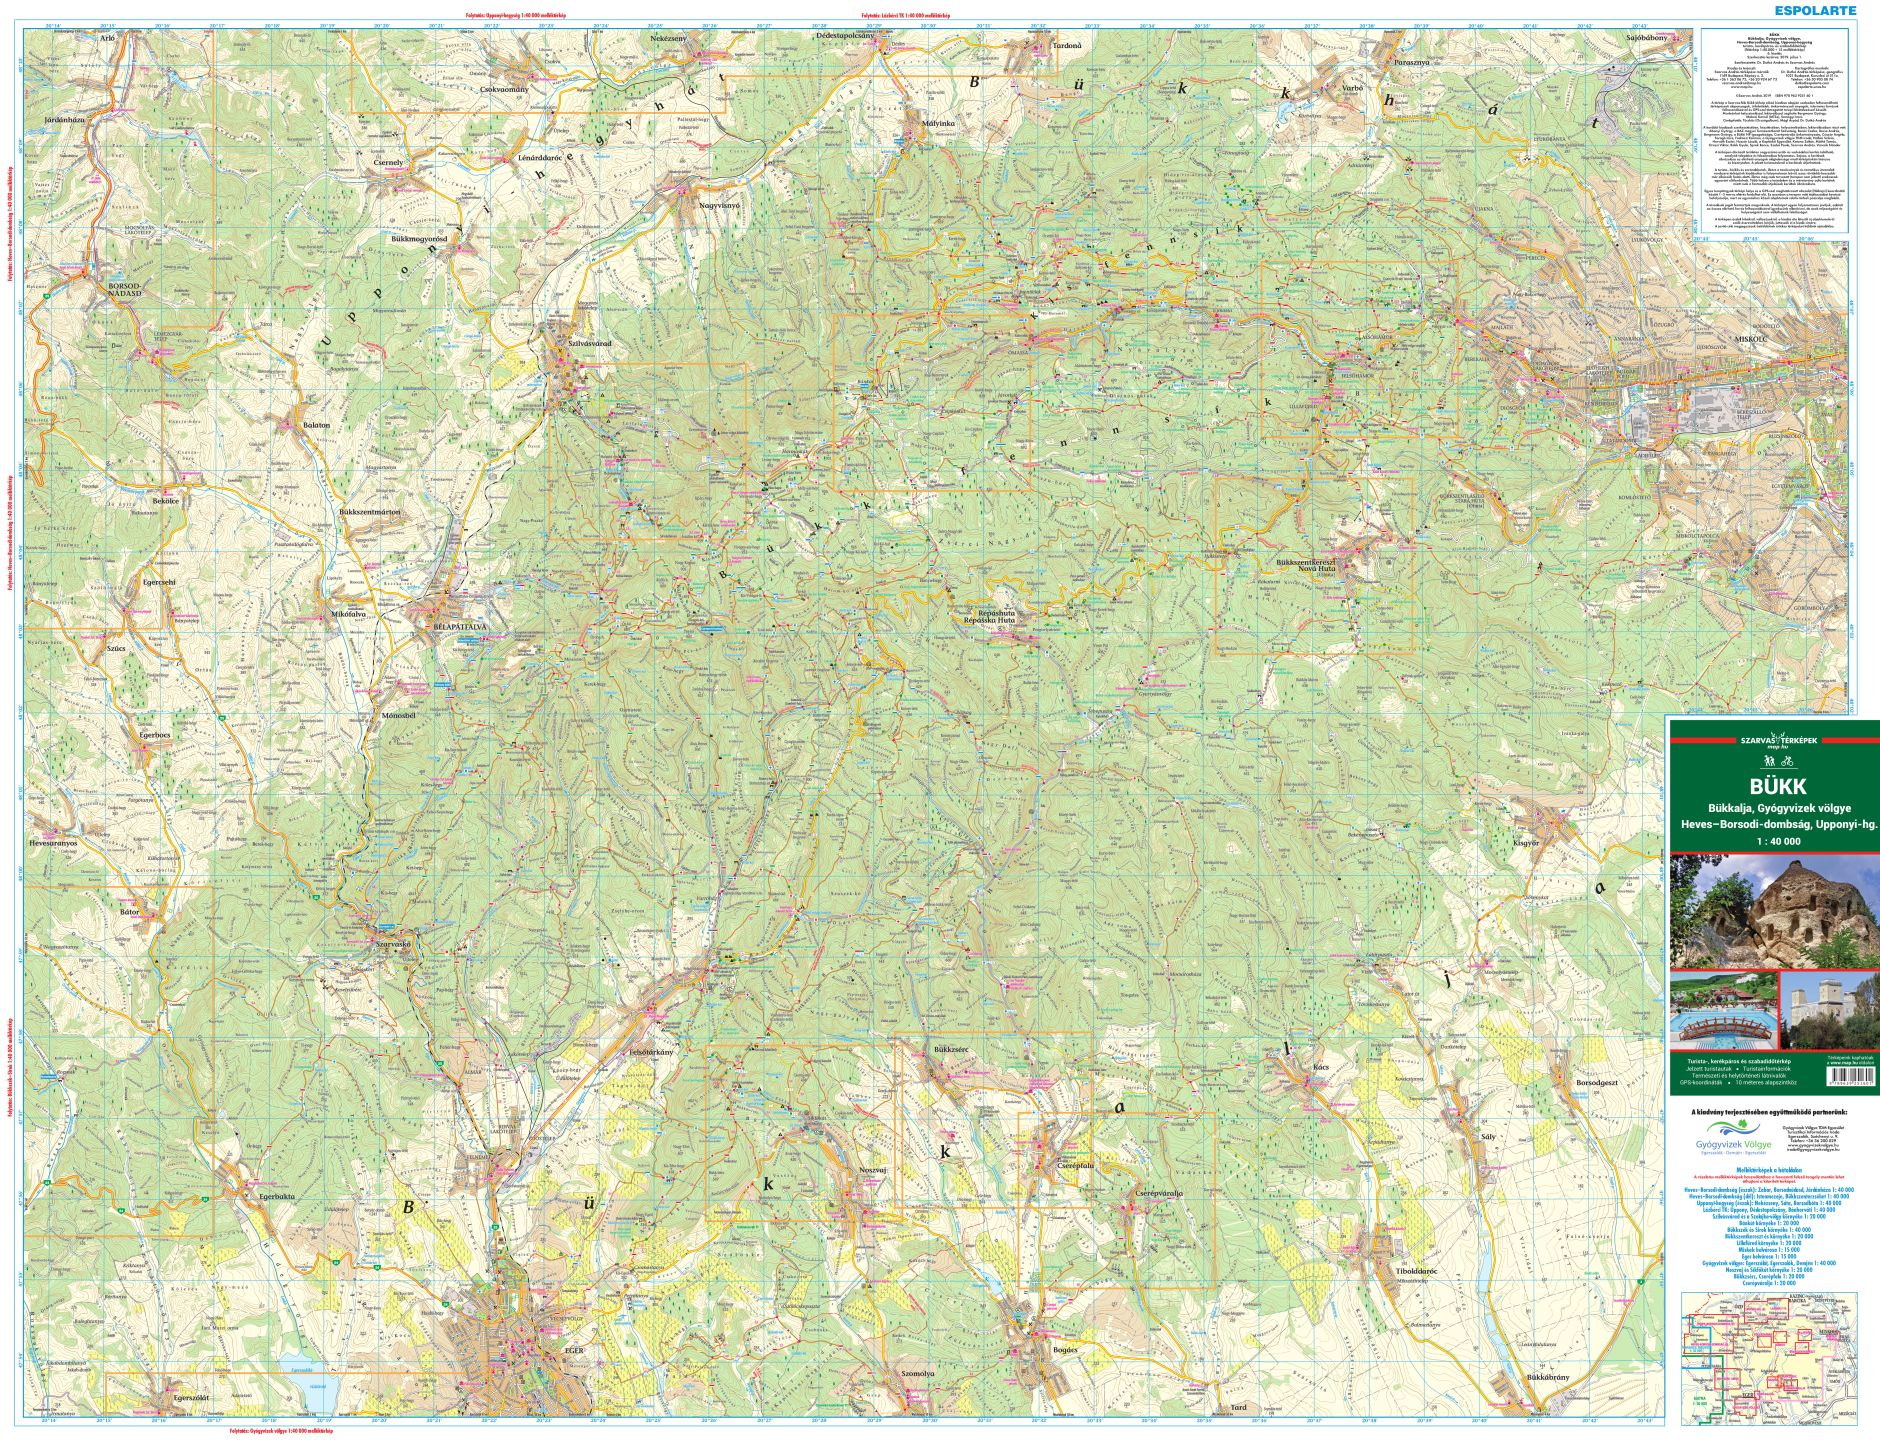 Tourist and biking map for mobile devices and tablets